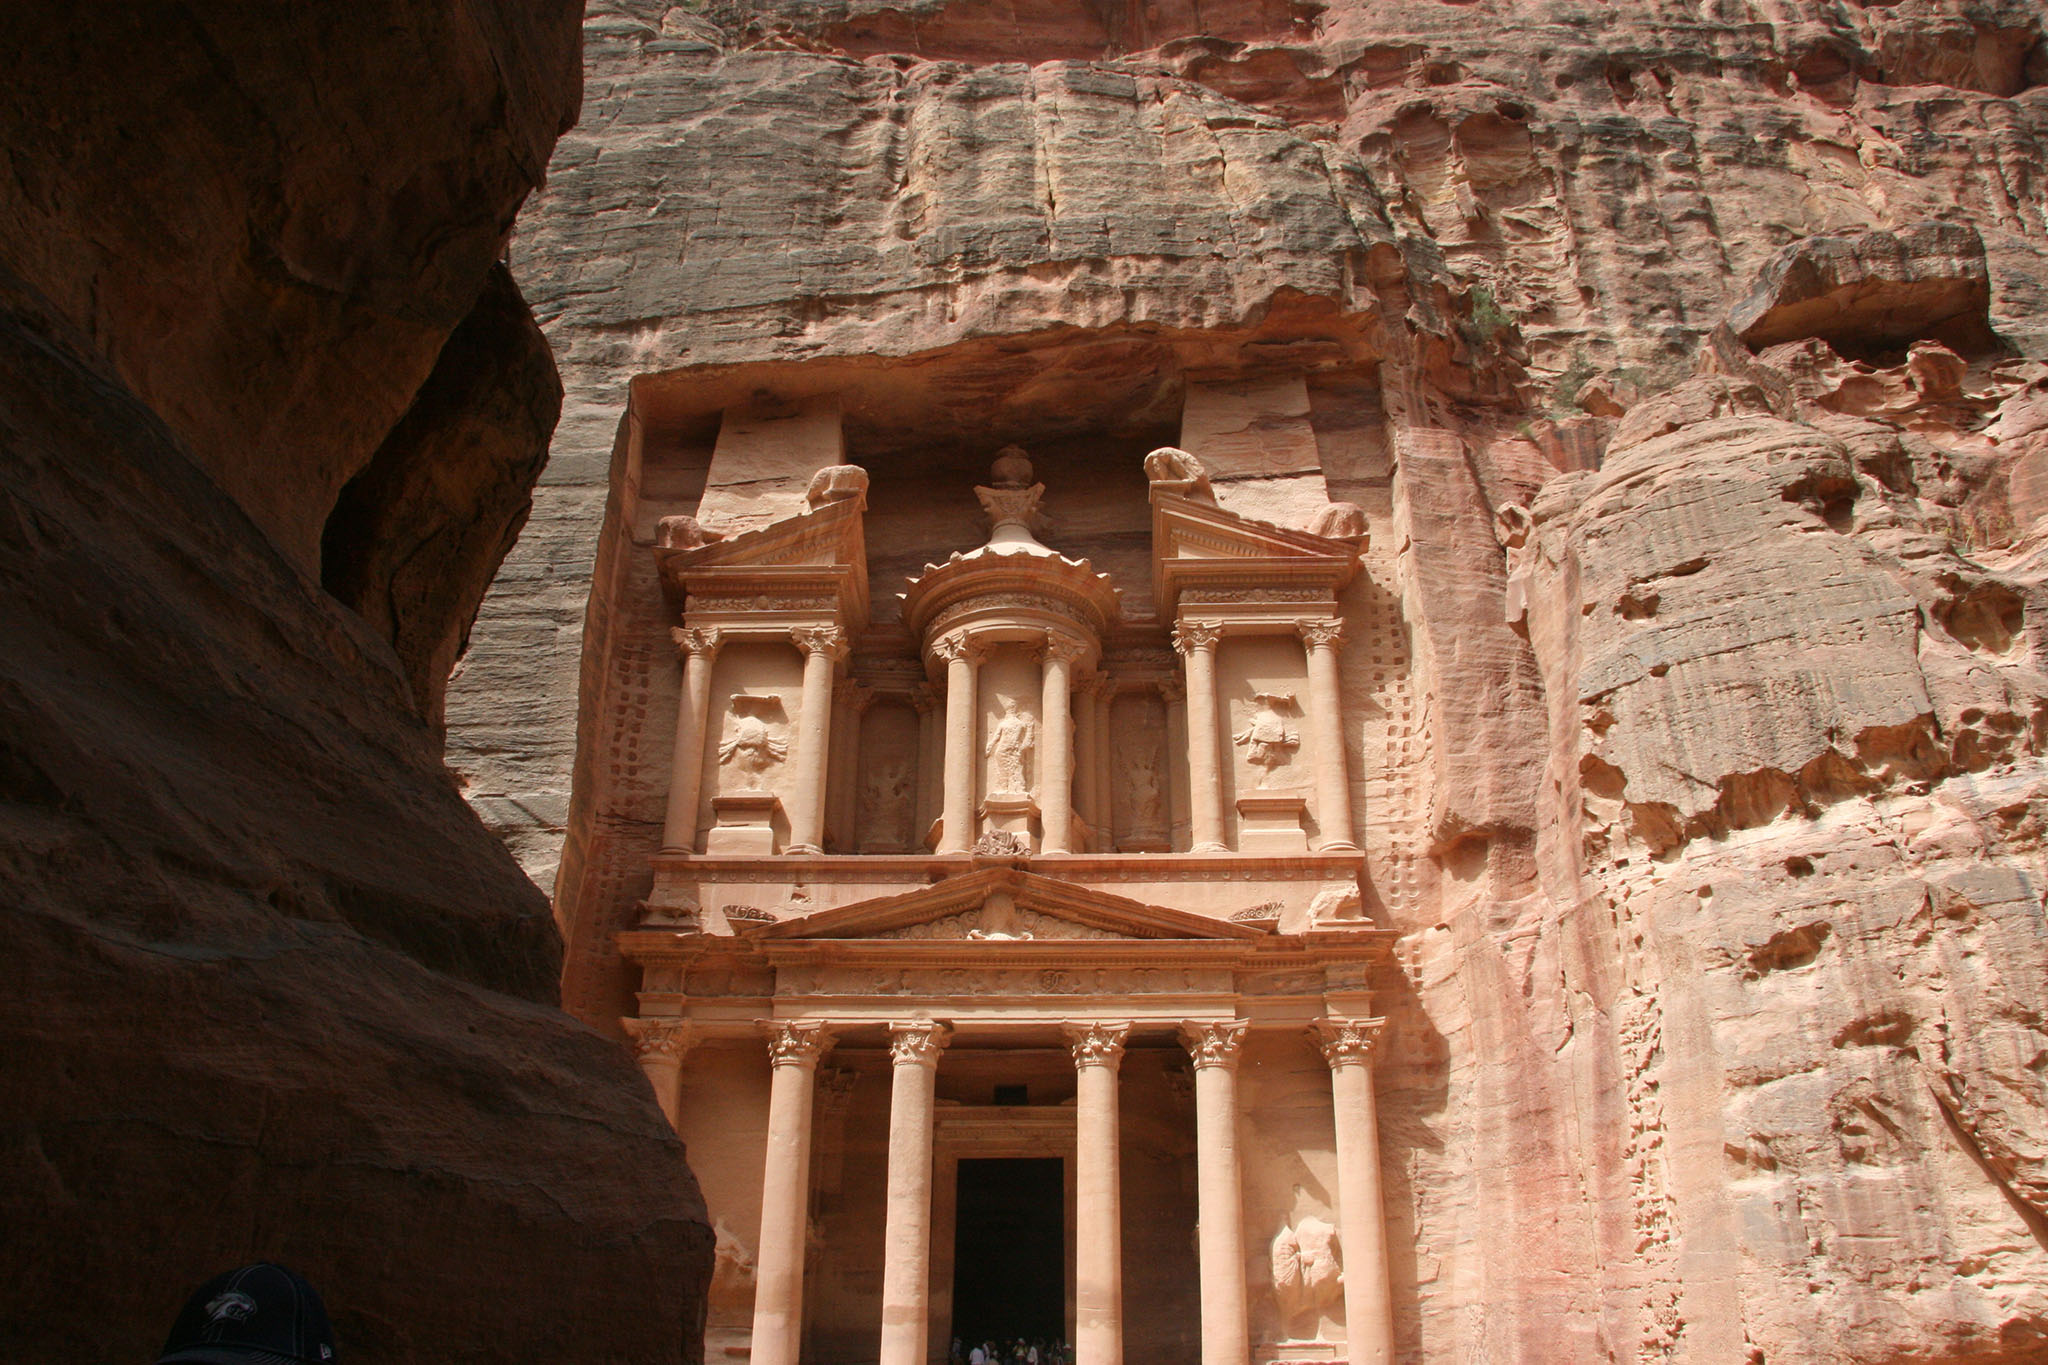 CAPODANNO A PETRA, SULLE TRACCE DEI NABATEI - National geographic expeditions